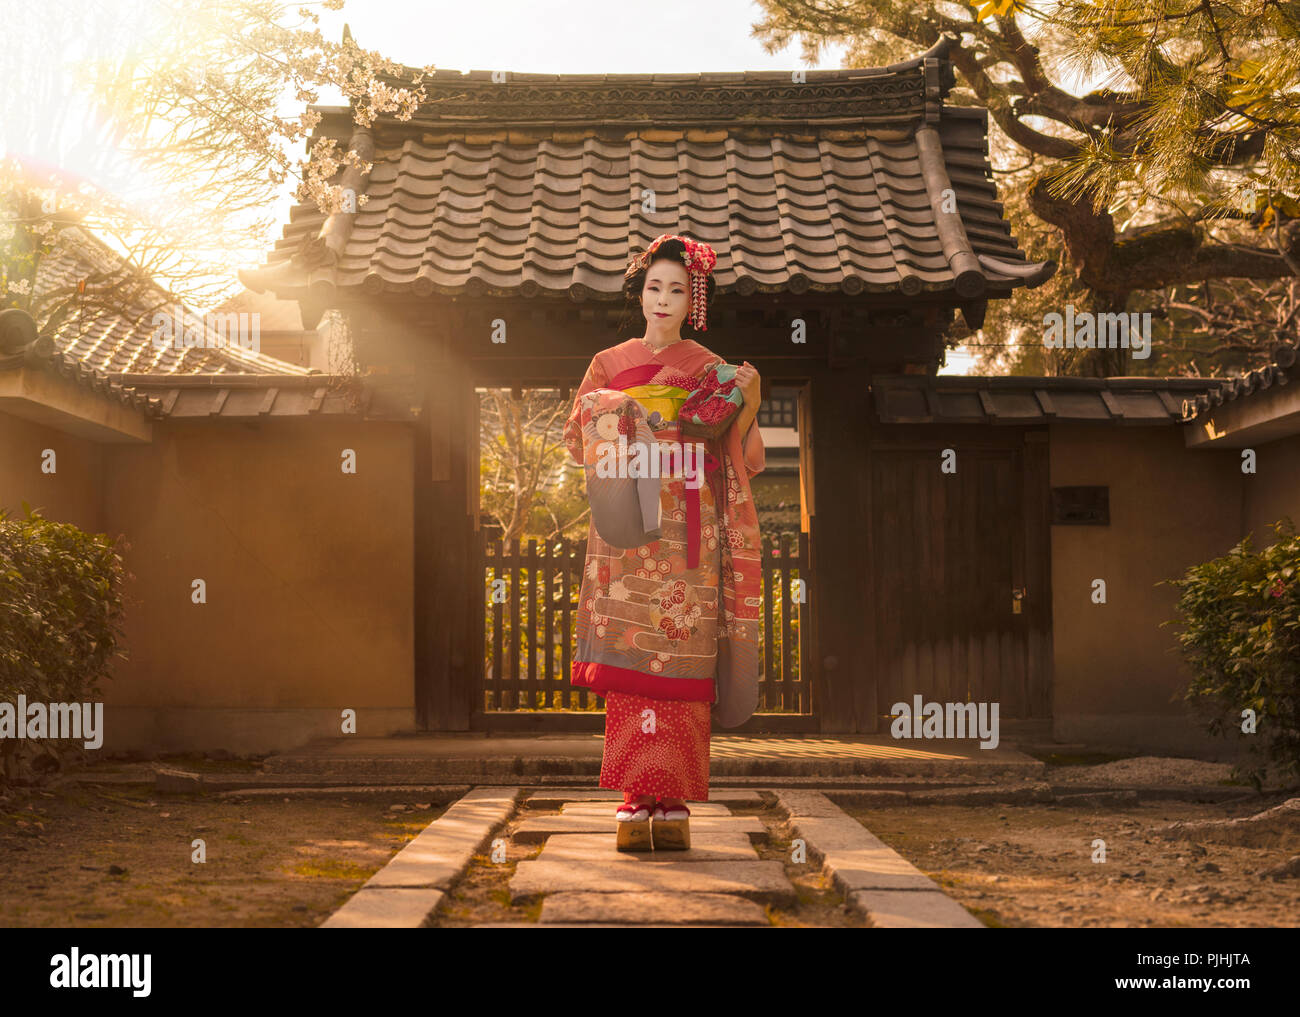 Maiko in a kimono posing on a stone path in front of the gate of a traditional Japanese house surrounded by cherry blossoms and pine trees in the rays Stock Photo